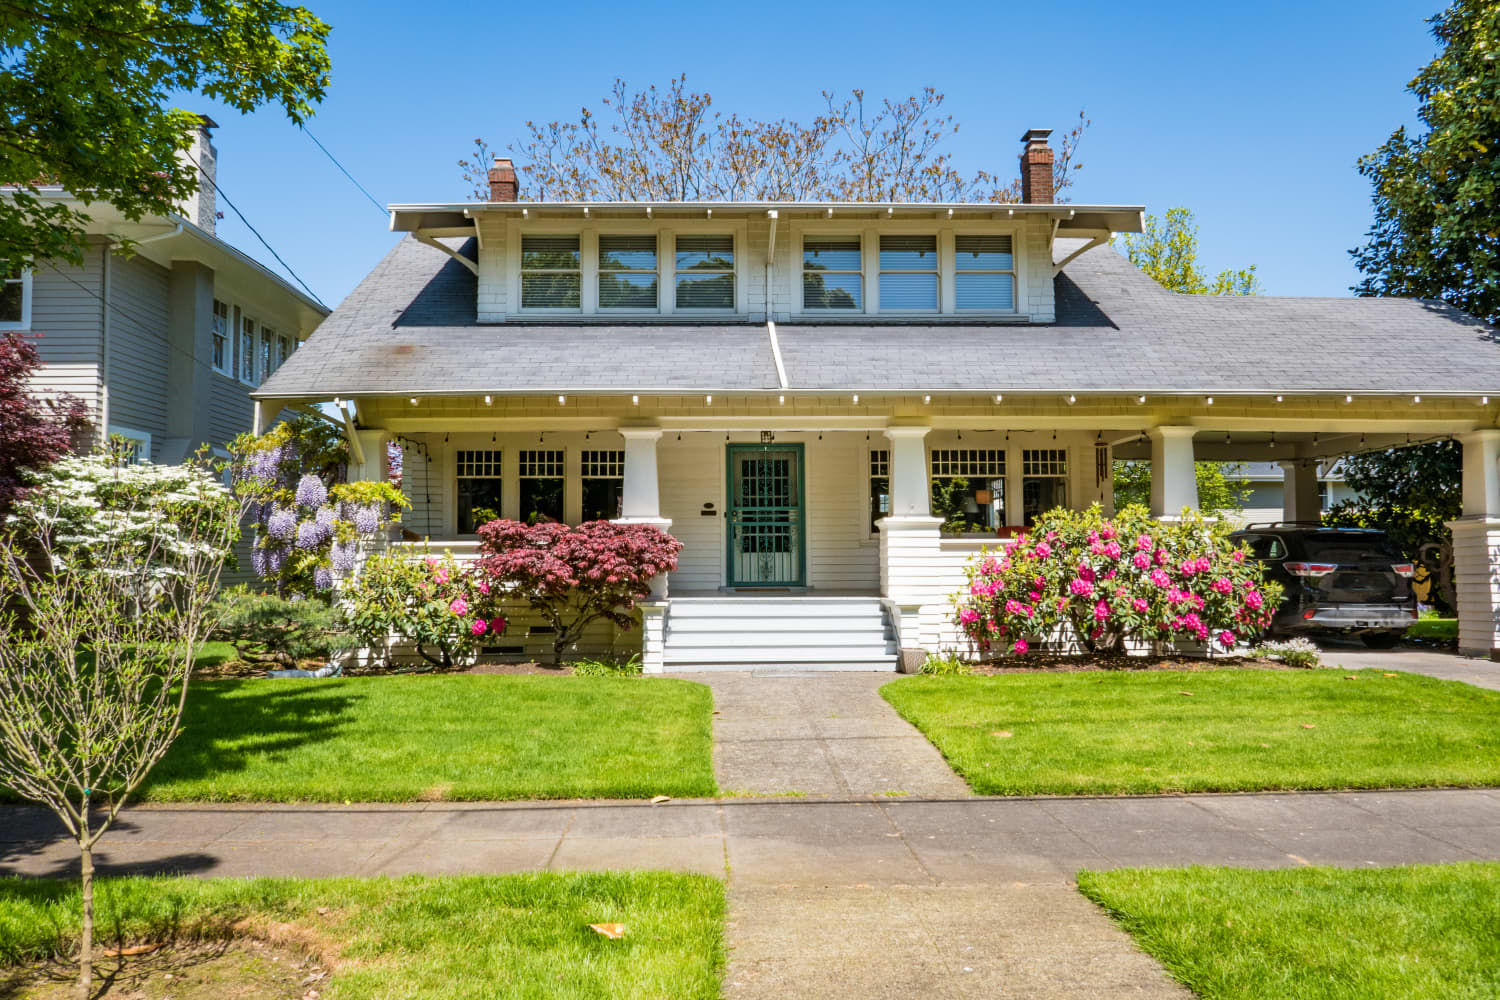 What Makes a Home a Craftsman? Here's How to Tell